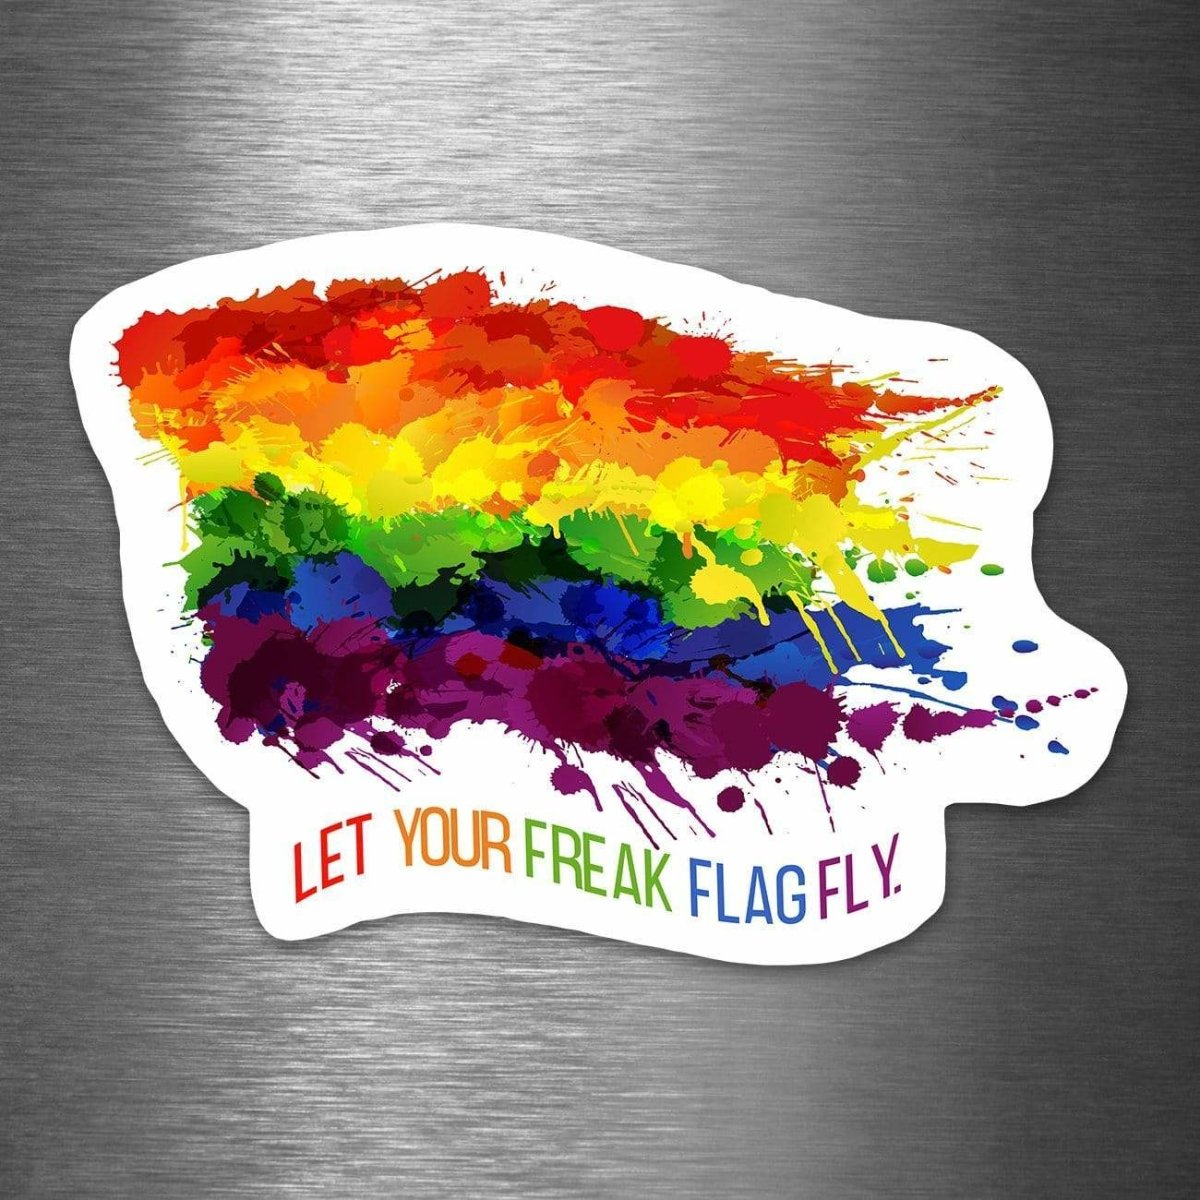 Let Your Freak Flag Fly - Vinyl Sticker - Dan Pearce Sticker Shop